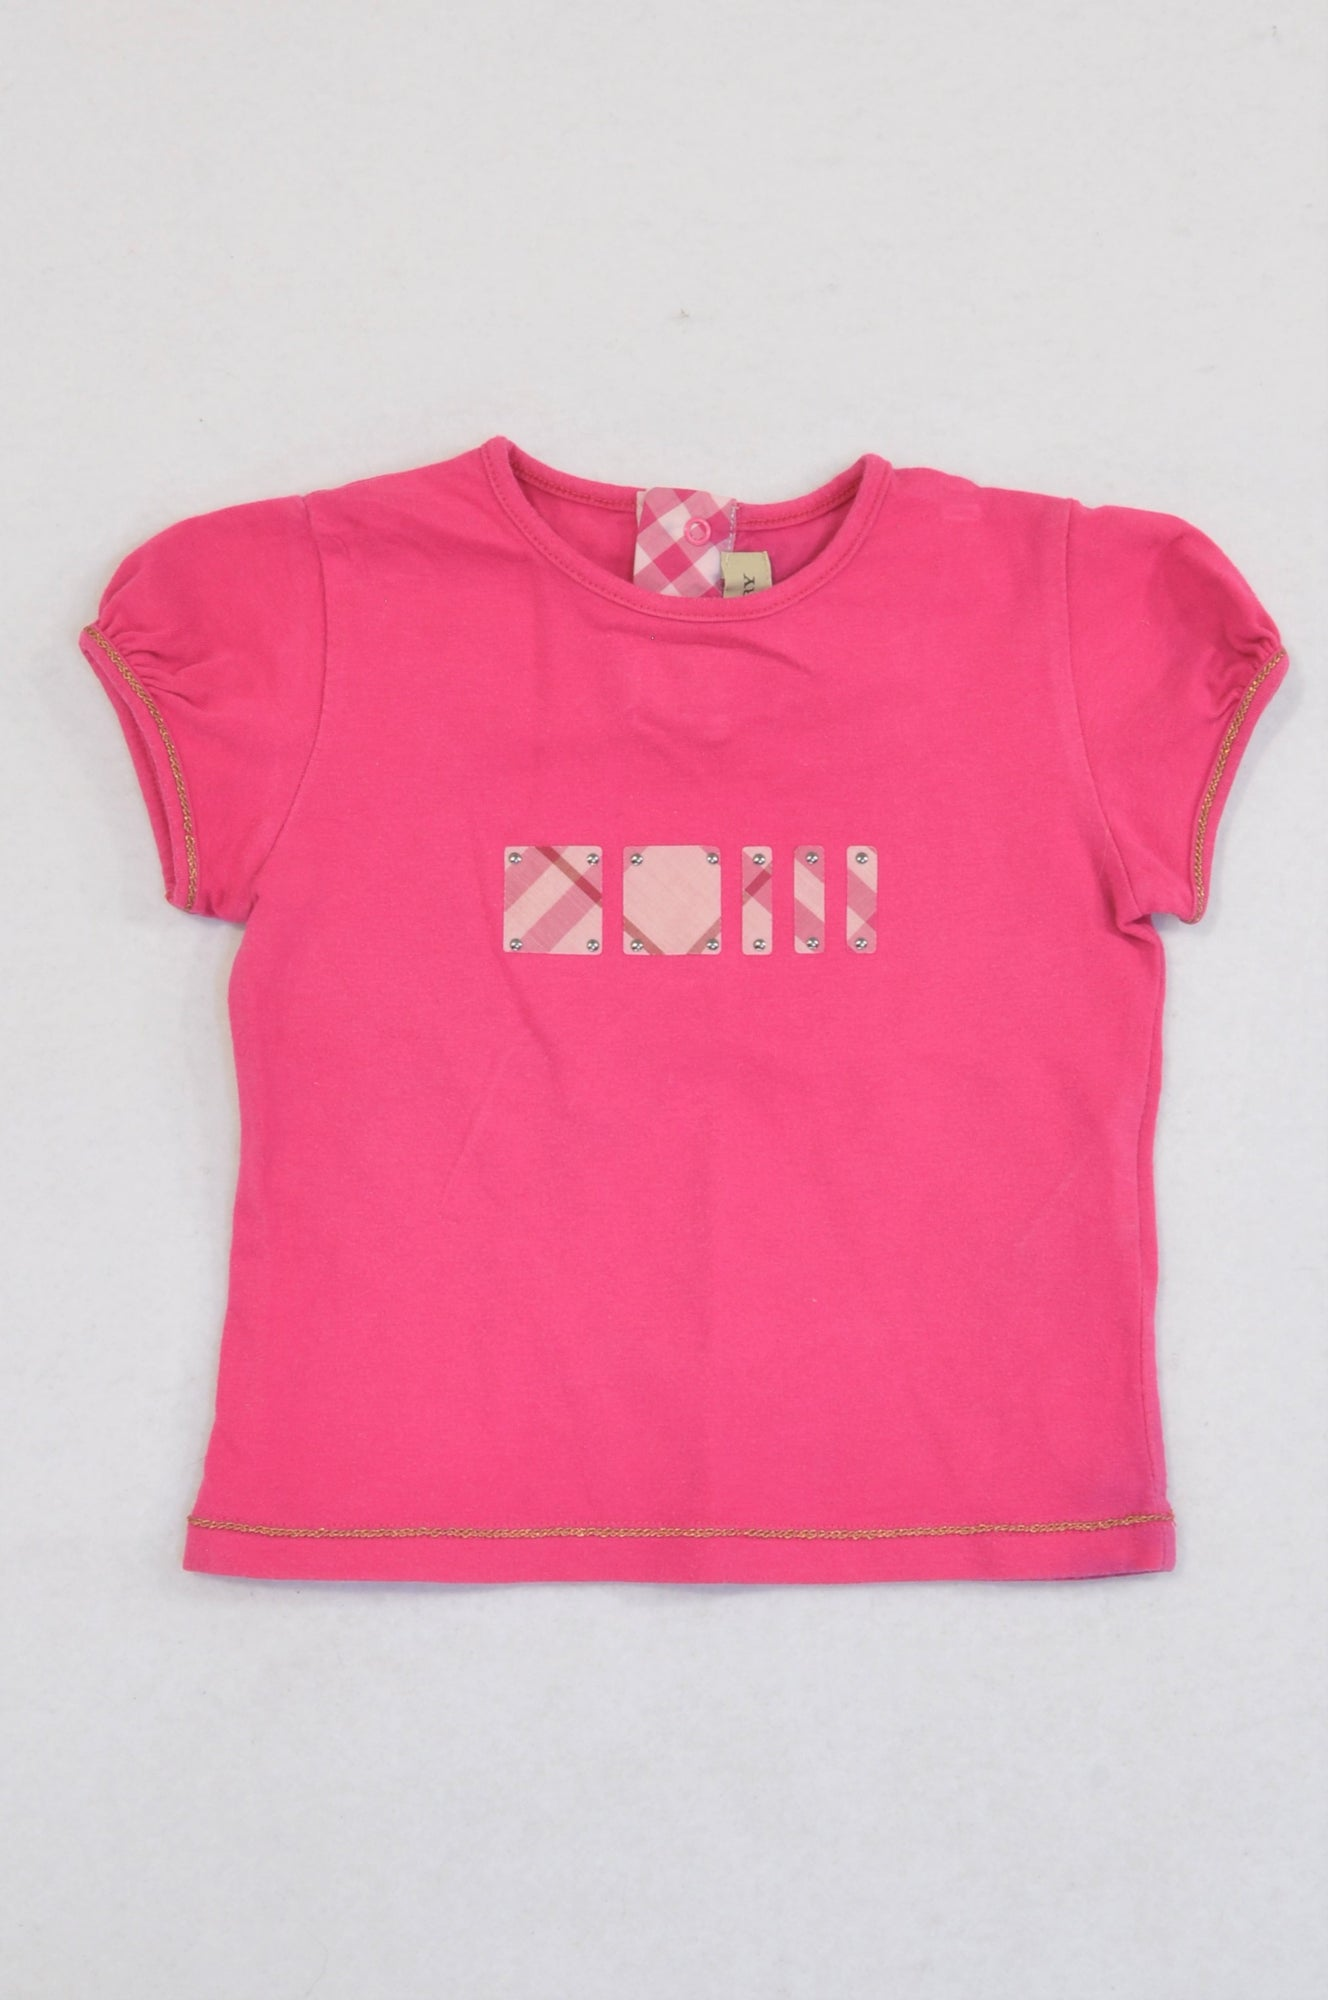 Burberry Cerise Plaid Stud Patch T-shirt Girls 6-9 months